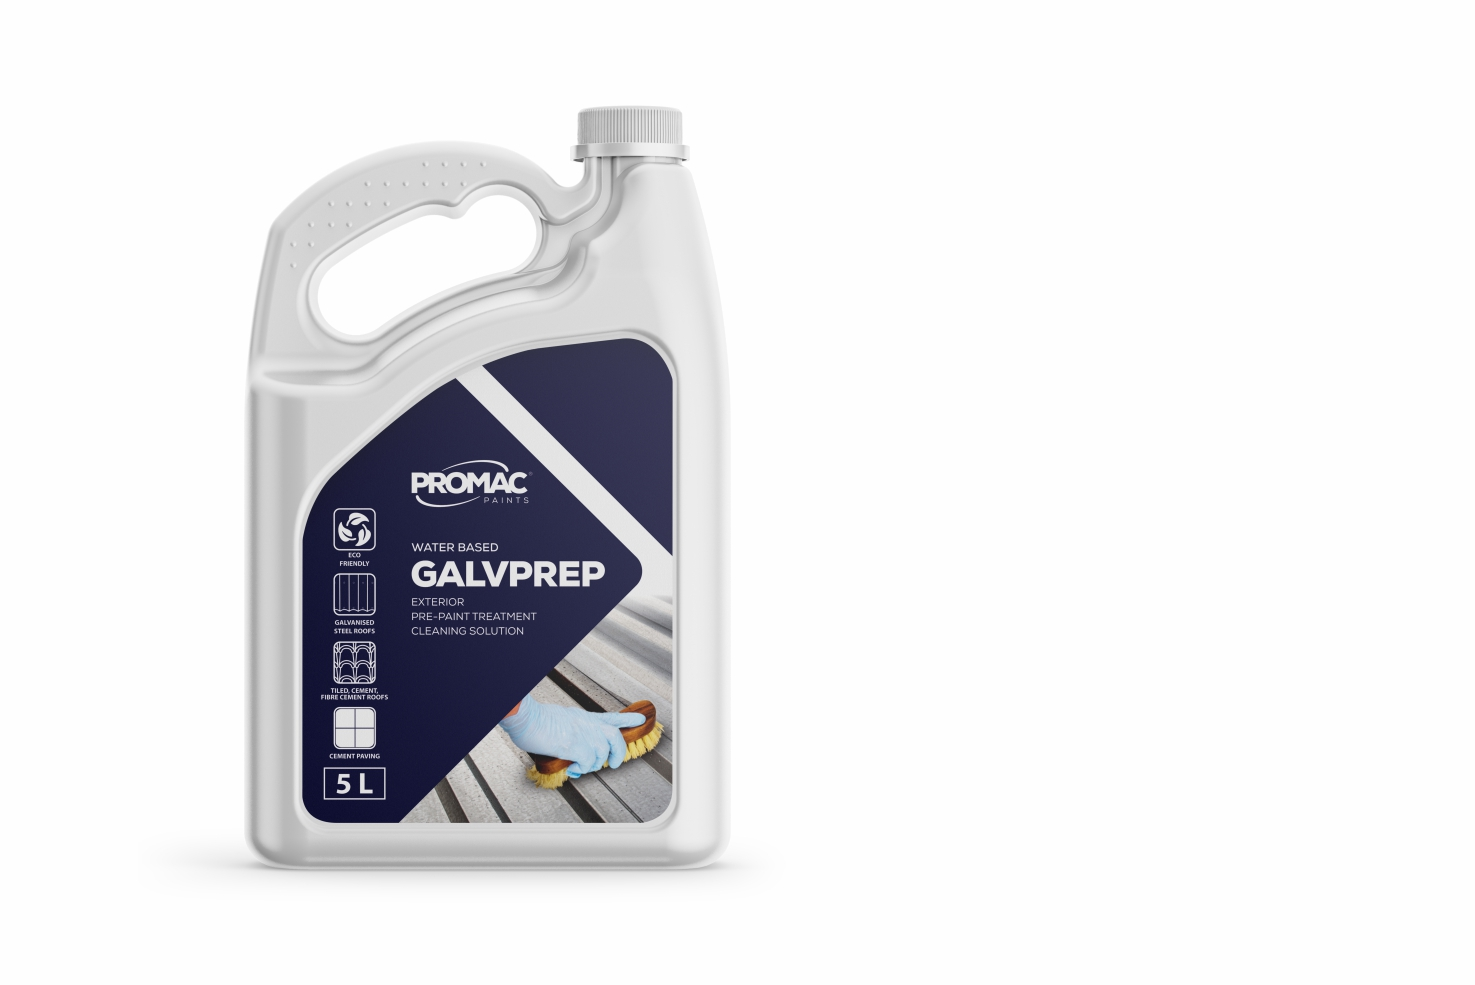 GALVPREP - WATER BASEDPromac GALVPREP multi purpose etch & rust cleaner is a ready to use cleaner and etching compound for the preparation of new, weathered or rusted galvanized iron, new or rusted steel, fibre cement, concrete roof tiles and smooth concrete paving prior to painting. It may also be used for pre-cleaning surfaces, where additional mechanical cleaning may be required on stubborn dirt or rust.